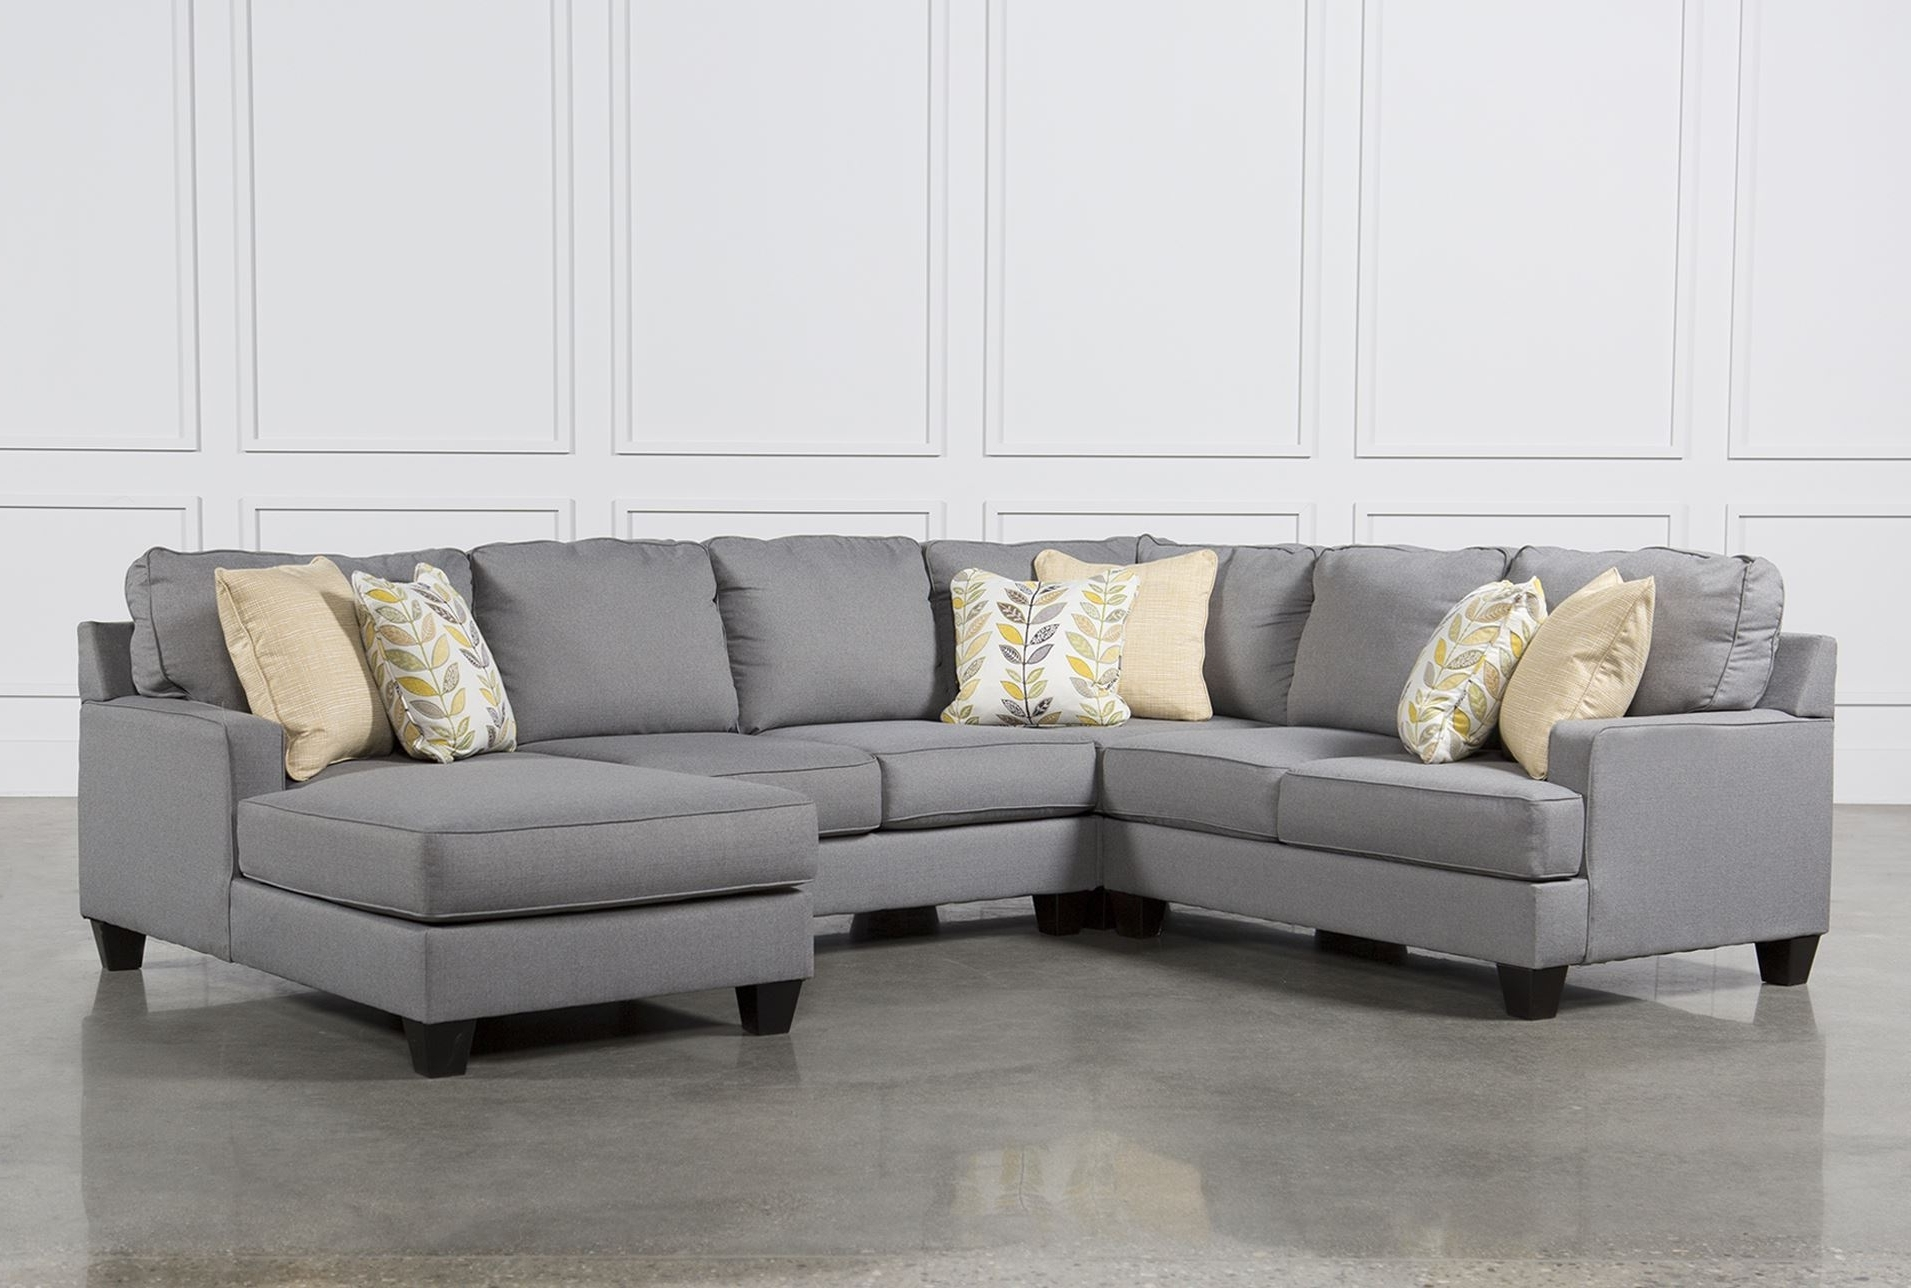 4 Piece Sectional Sofas With Chaise With Regard To Most Up To Date Luxury 4 Piece Sectional Sofa 74 For Your Office Sofa Ideas With  (View 2 of 15)